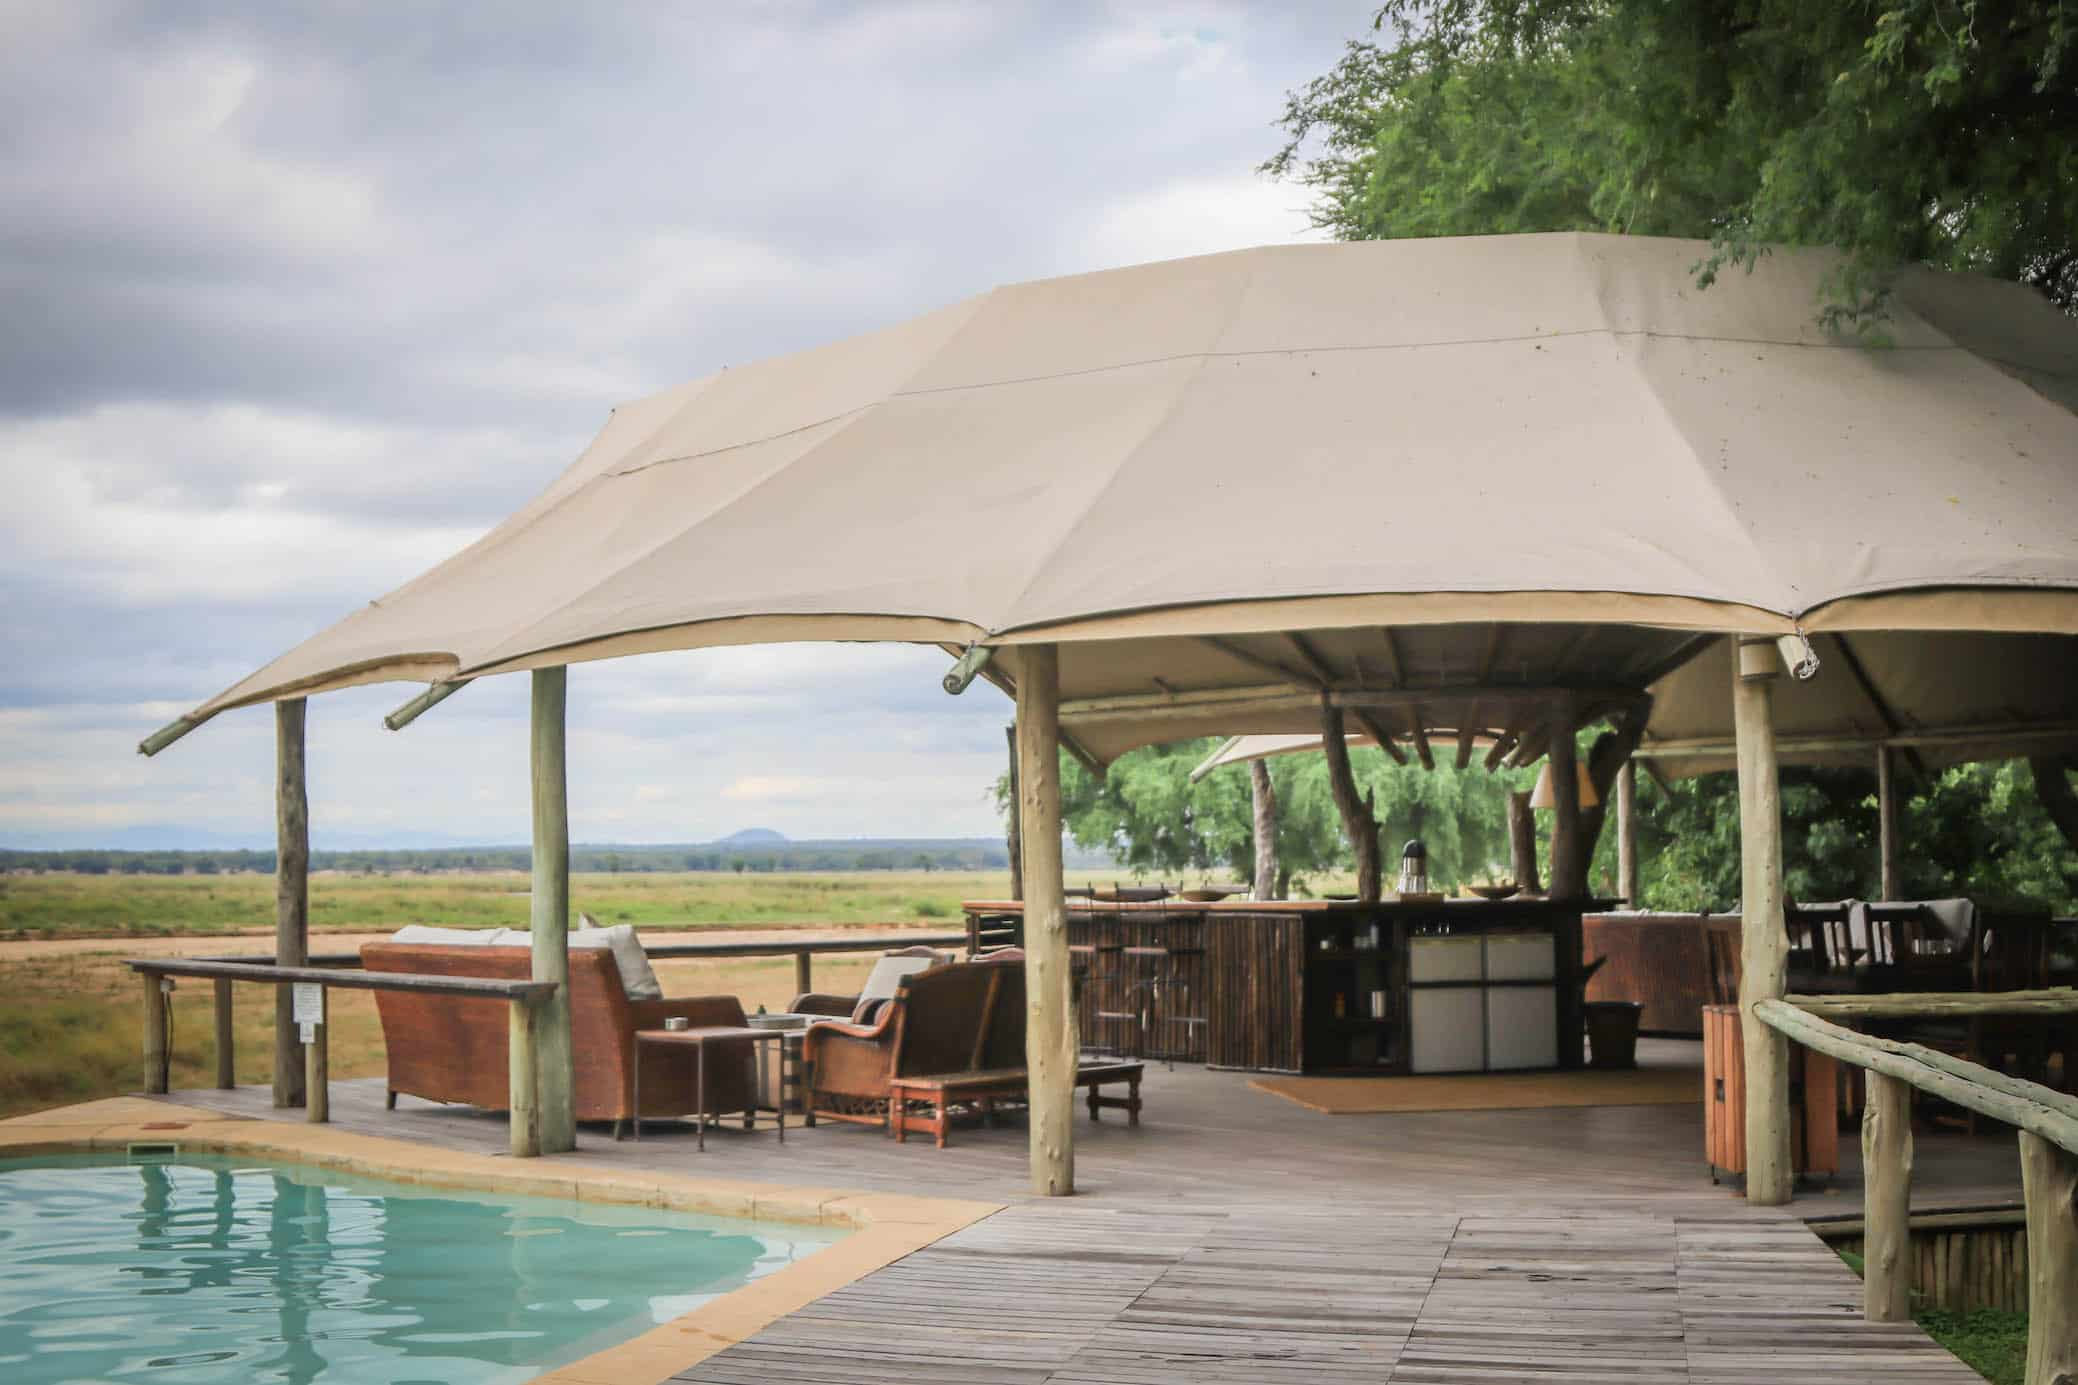 Anabezi Camp in the Lower Zambezi